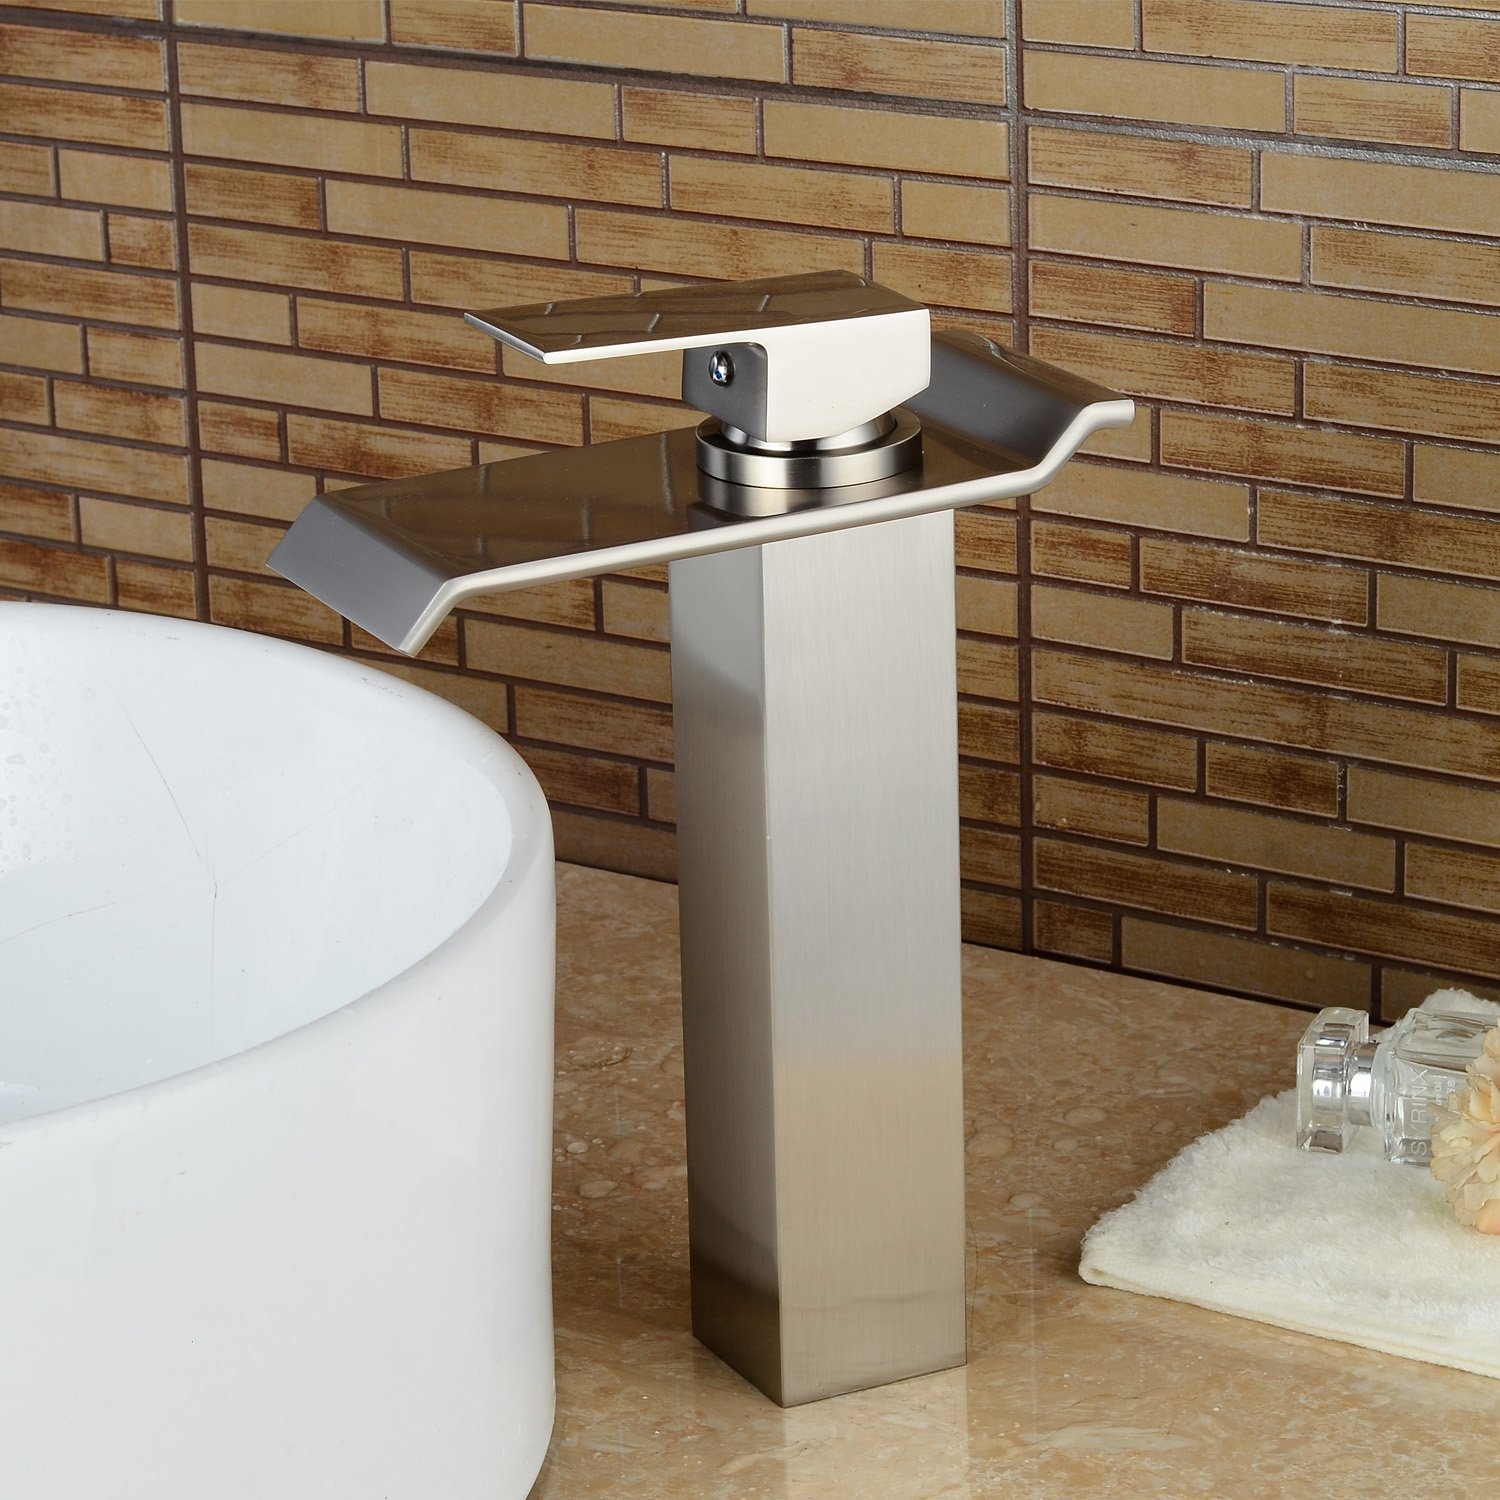 Lightinthebox Contemporary One Handle Deck Mount Solid Brass Widespread Waterfall Bathroom Sink Faucet Brush Nickel Finish Tall Spout Bath Basin Faucet NEW